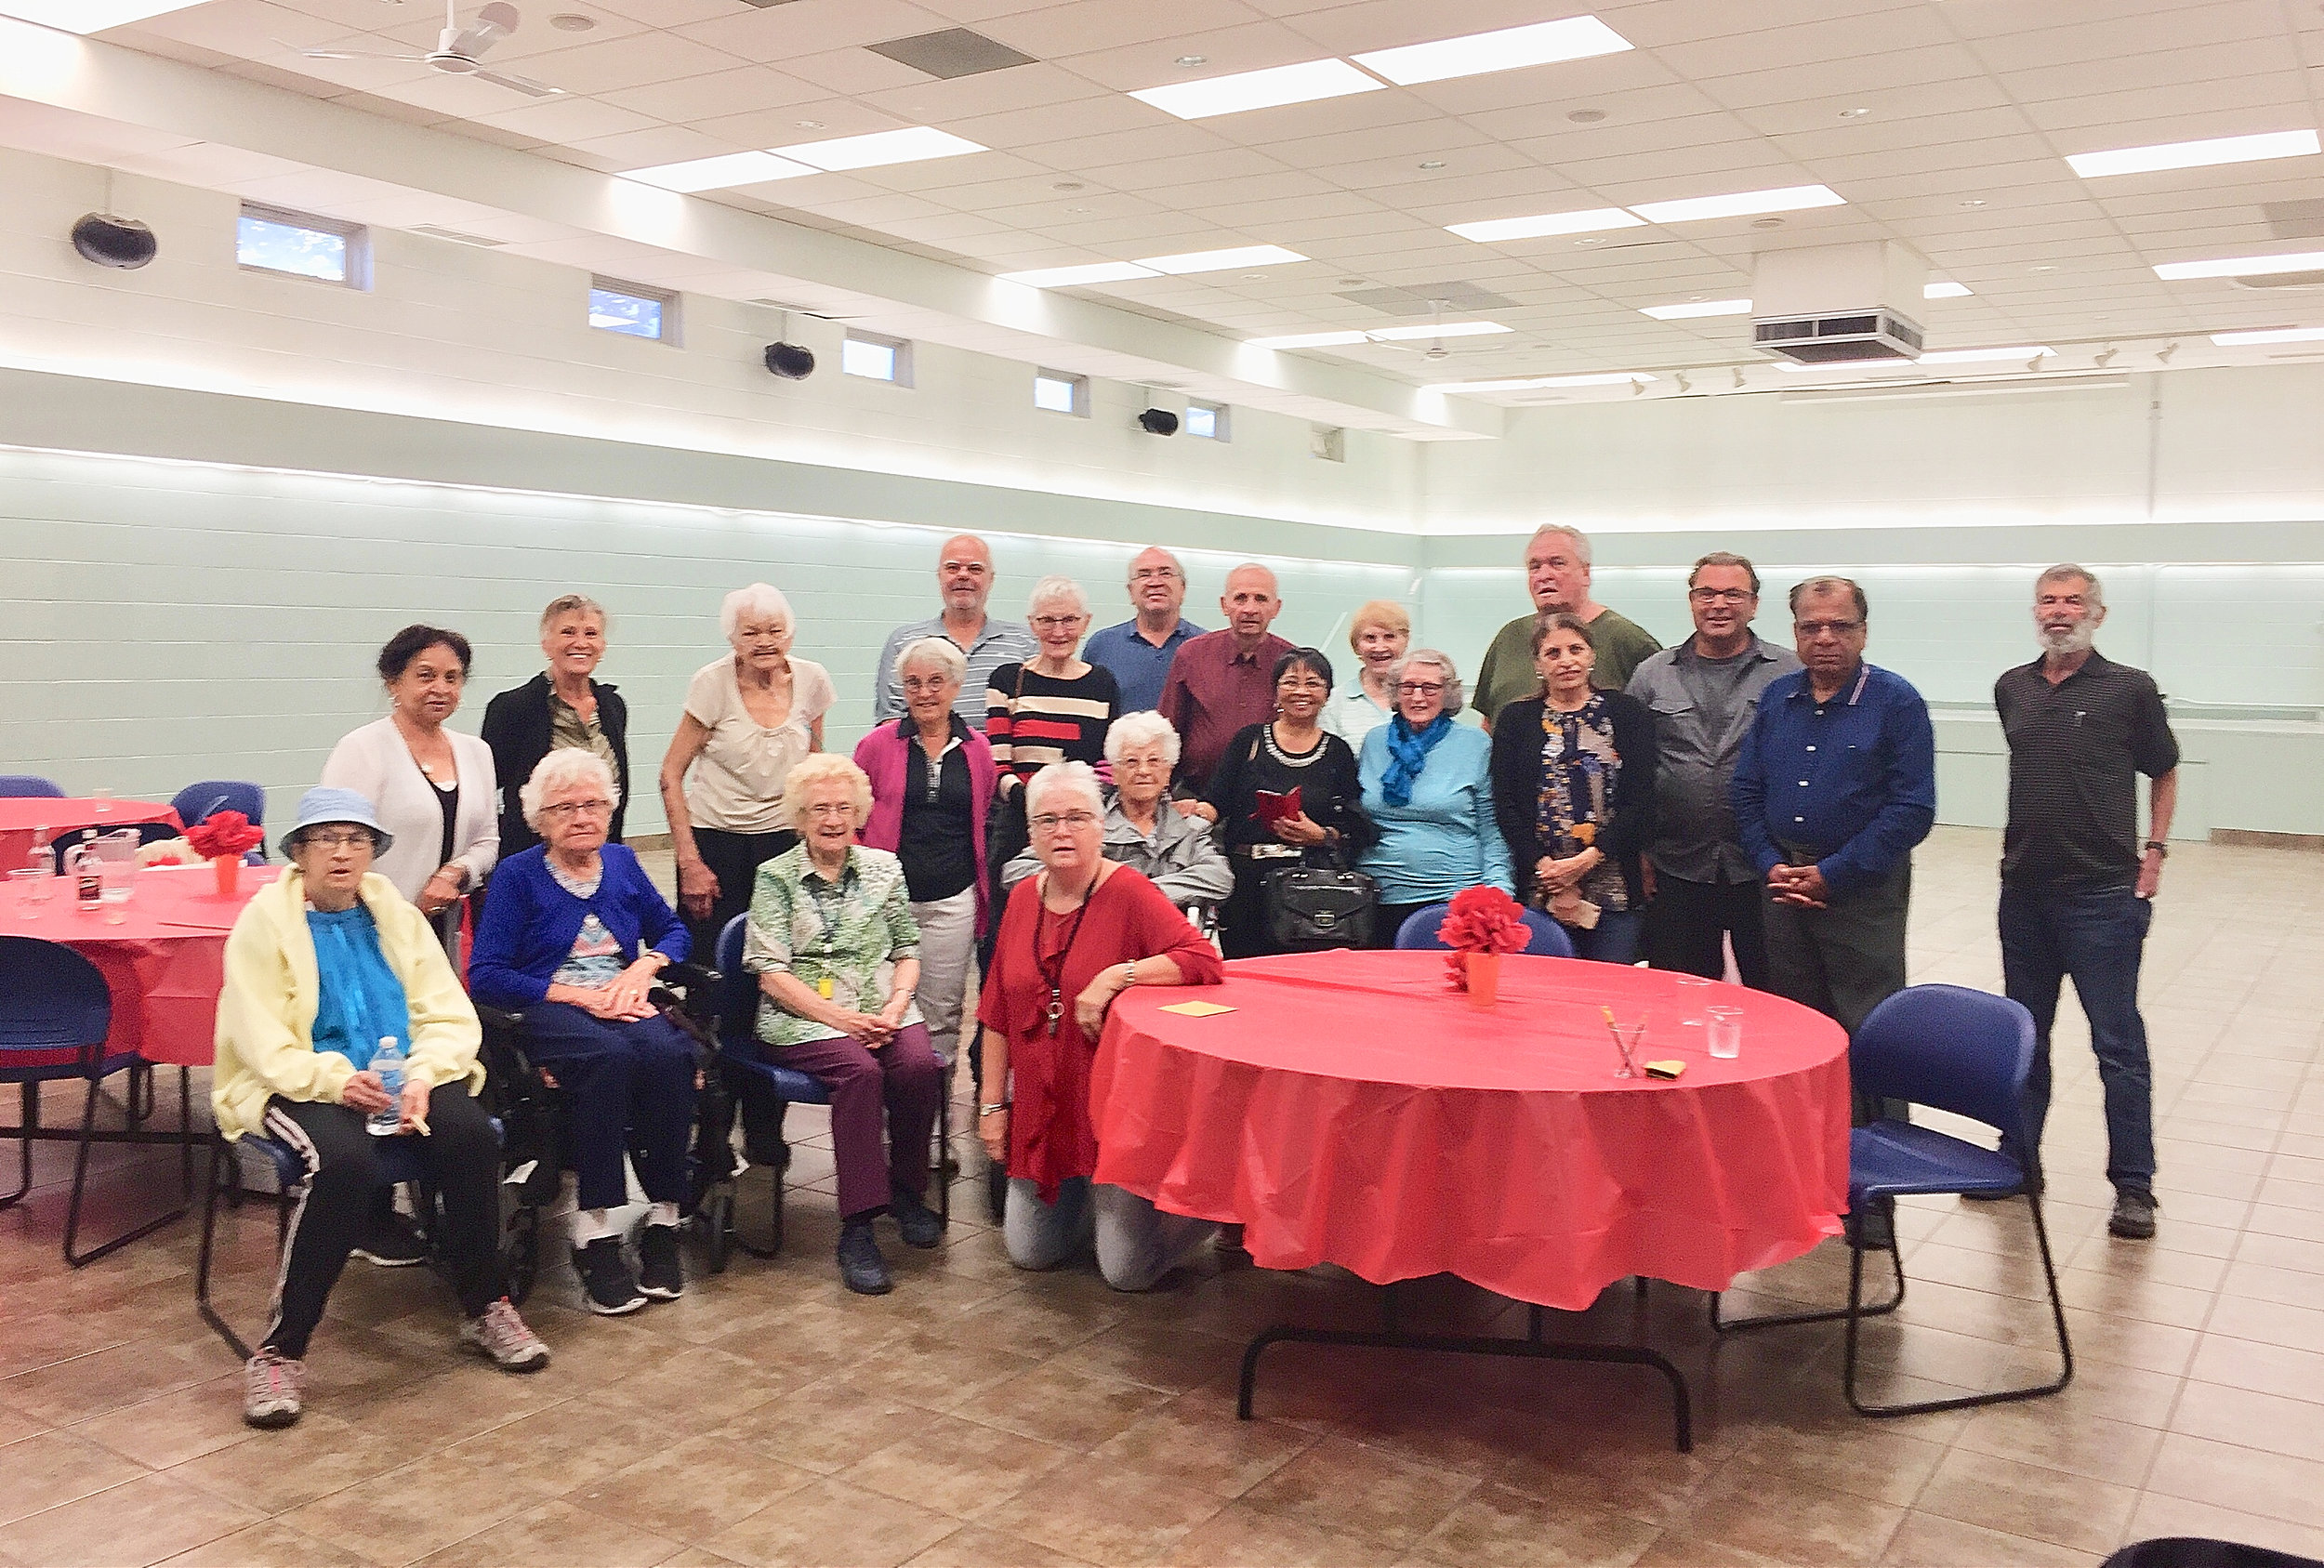 Seniors Dinner at Crossroads Community Hall